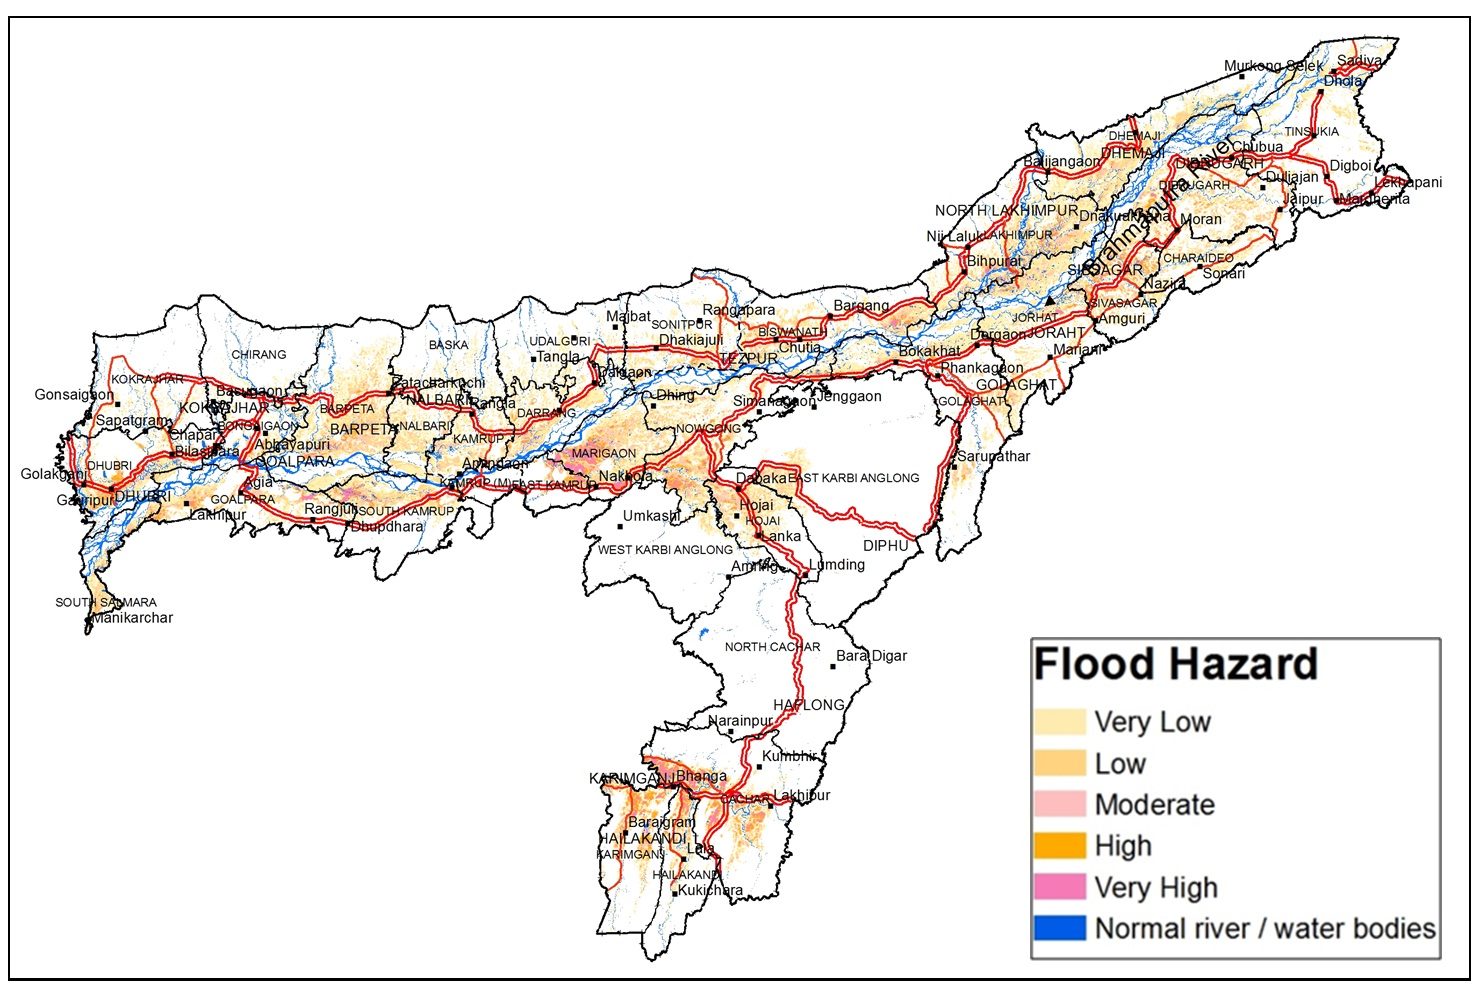 Flood hazard map of Assam (Different colours represent different hazard classes)